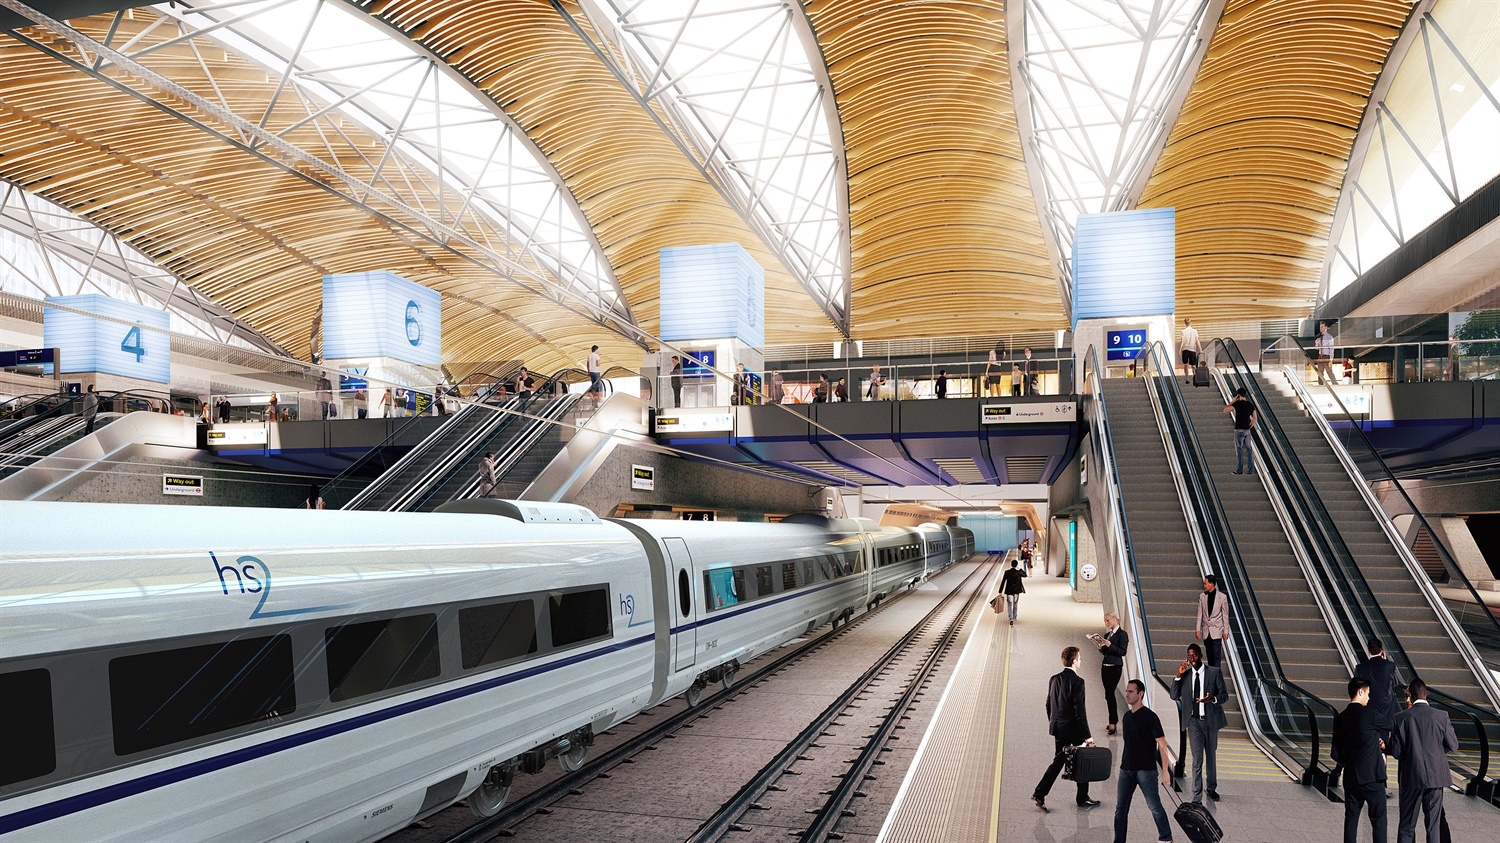 2018: The year of opportunity for HS2